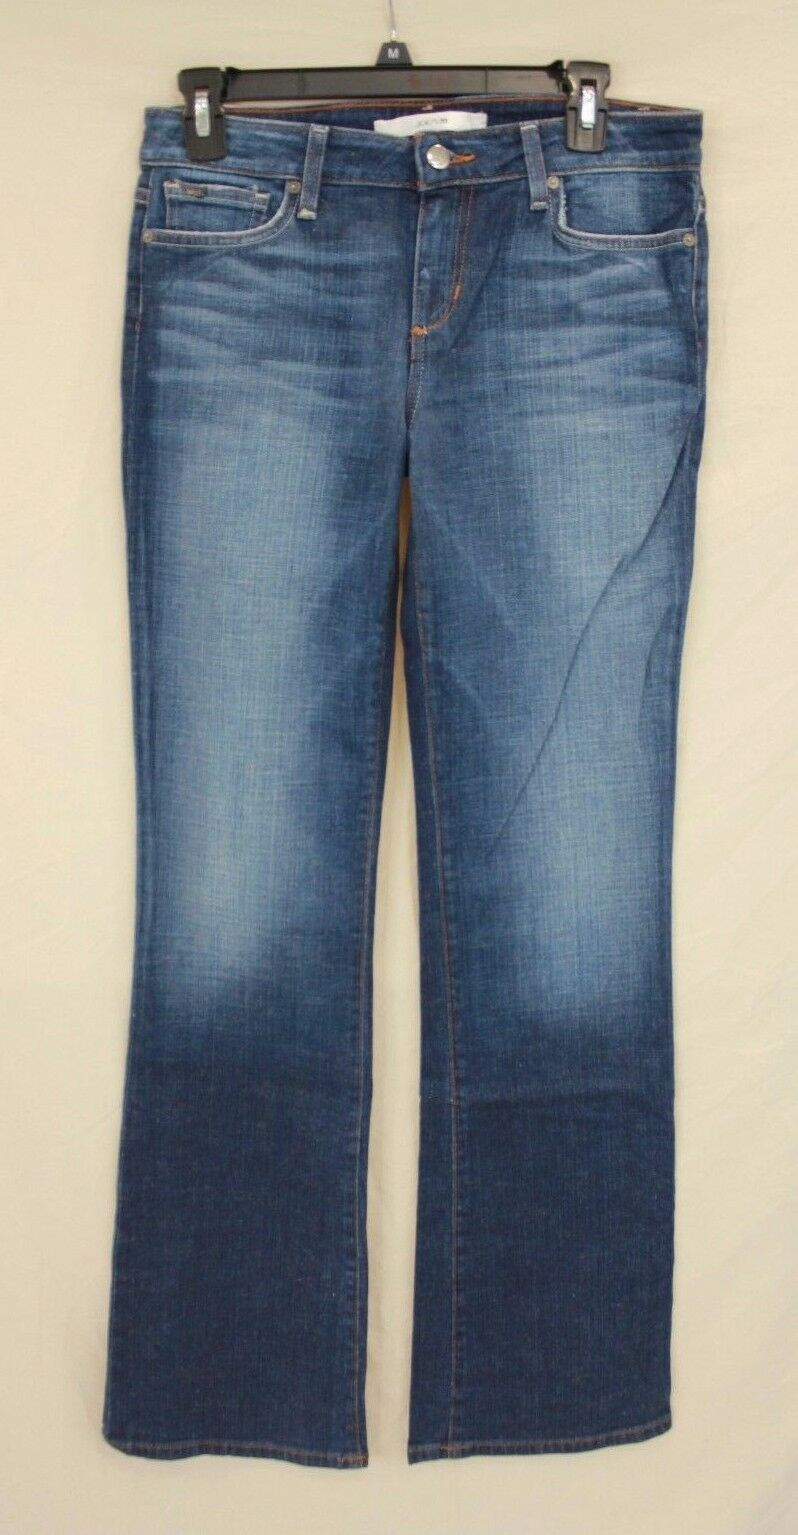 NWT JOE'S MUSE HIGH RISE DEMI WASH FLARE STRETCH JEANS NEW SIZE 27